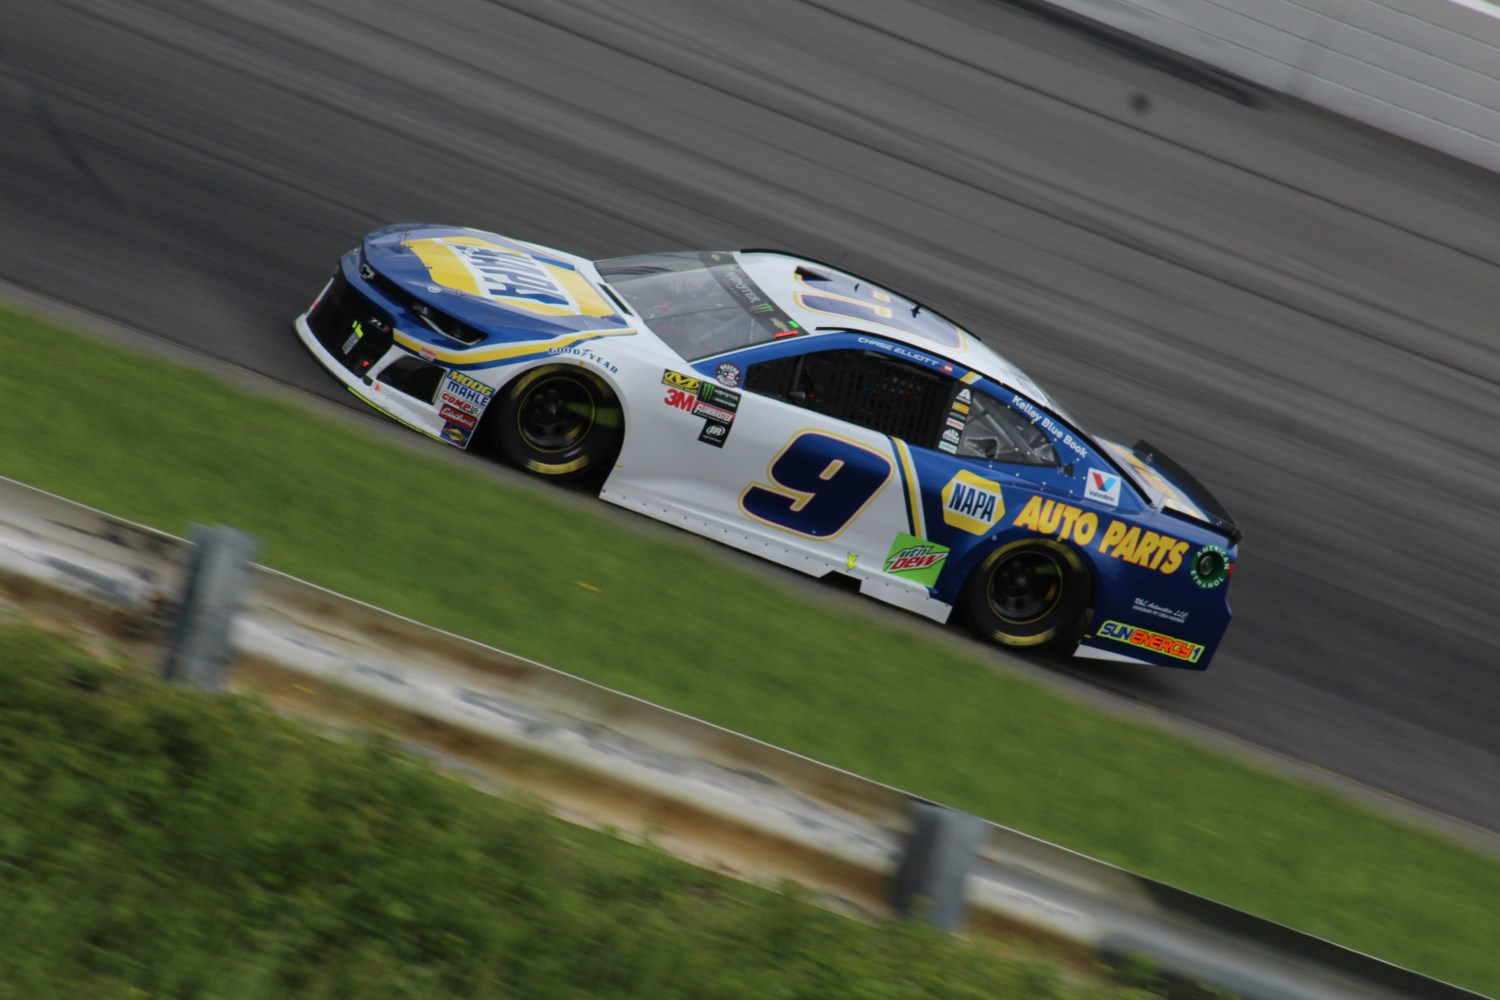 Chase Elliott races during the 2018 Pocono 400. (Tyler Head | The Racing Experts)